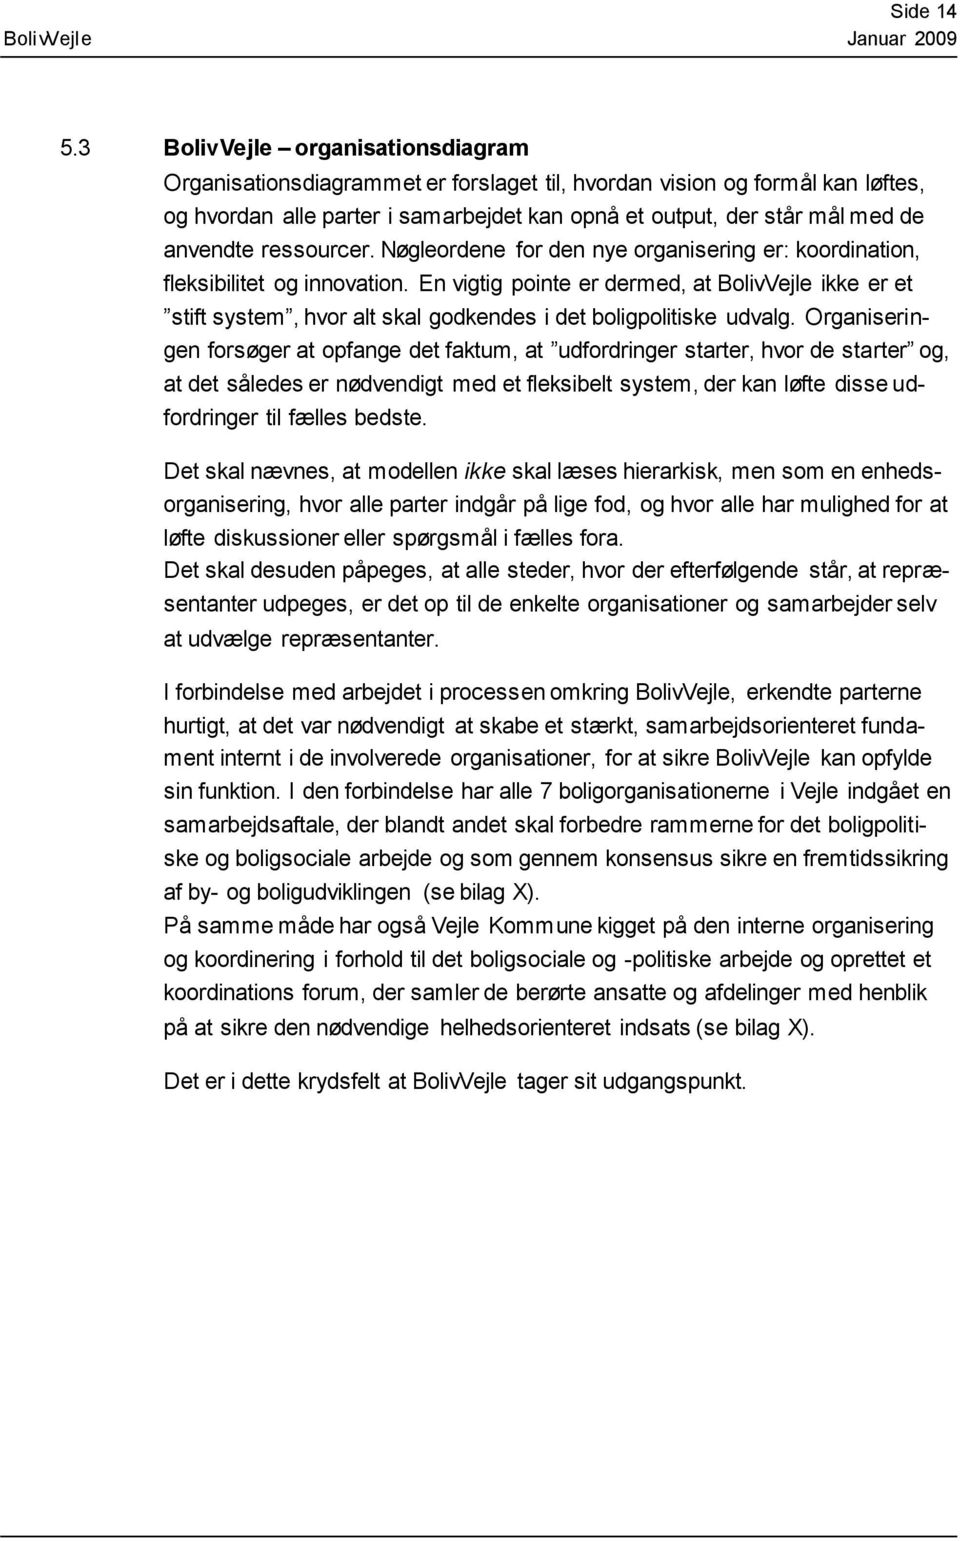 ressourcer. Nøgleordene for den nye organisering er: koordination, fleksibilitet og innovation.